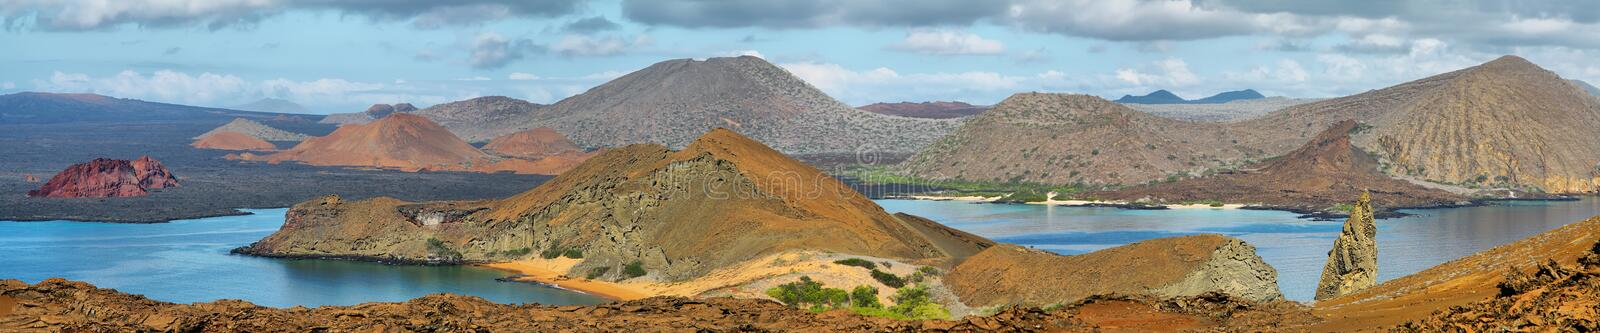 Panoramic view of pinnacle Rock and surroundings in Bartolome royalty free stock photos